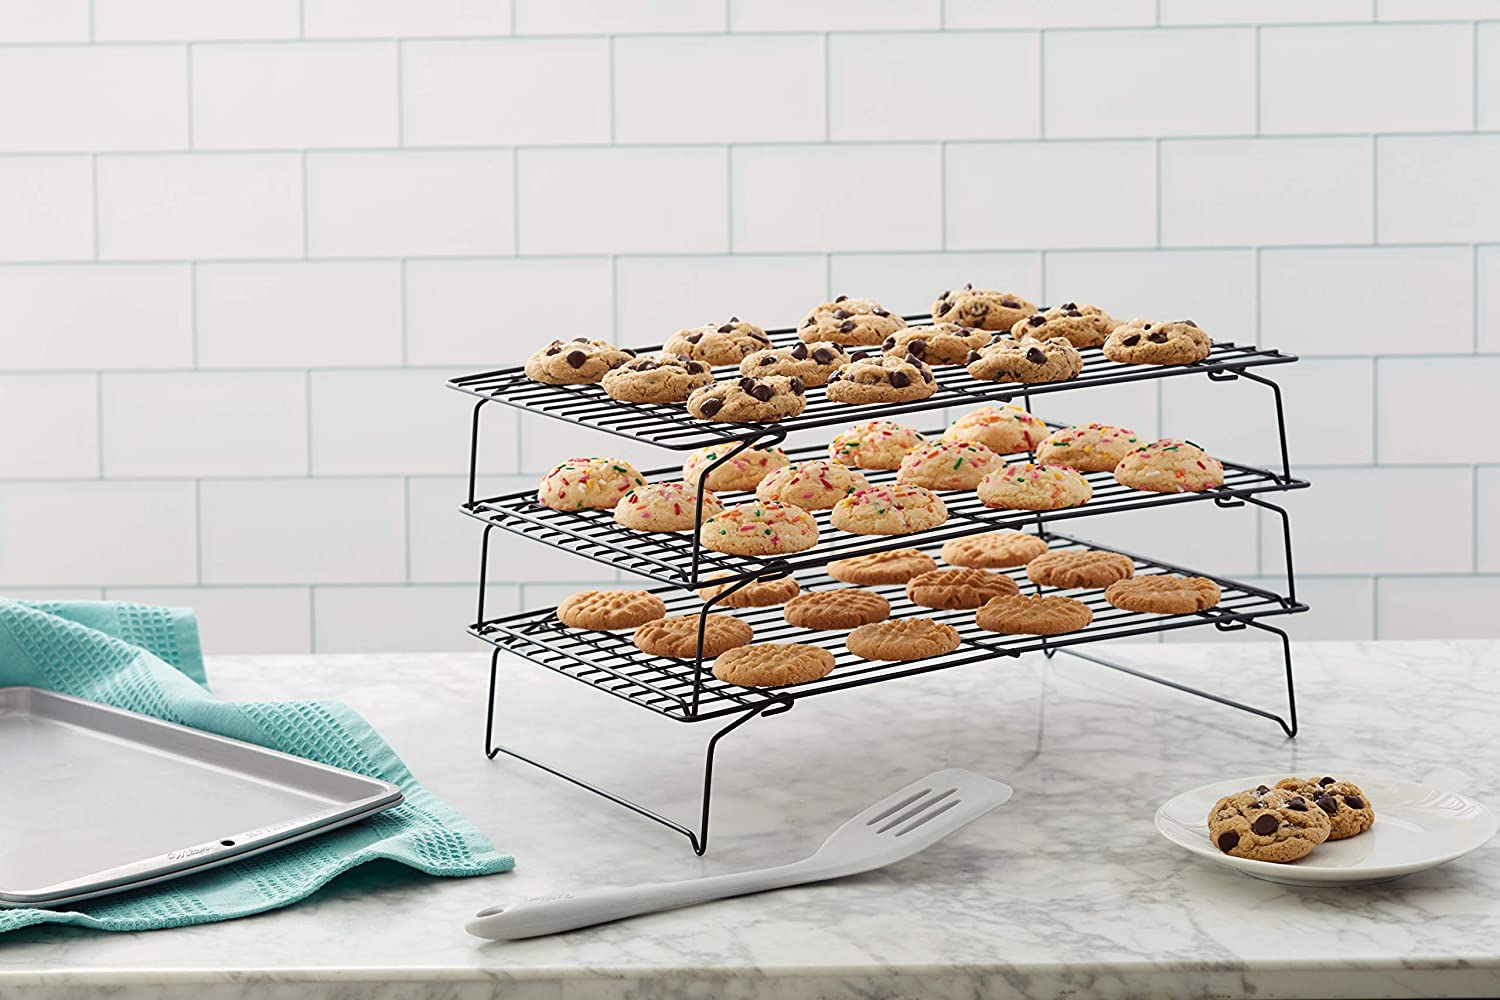 A three-tier cooling rack with cookies, sitting on a marble countertop